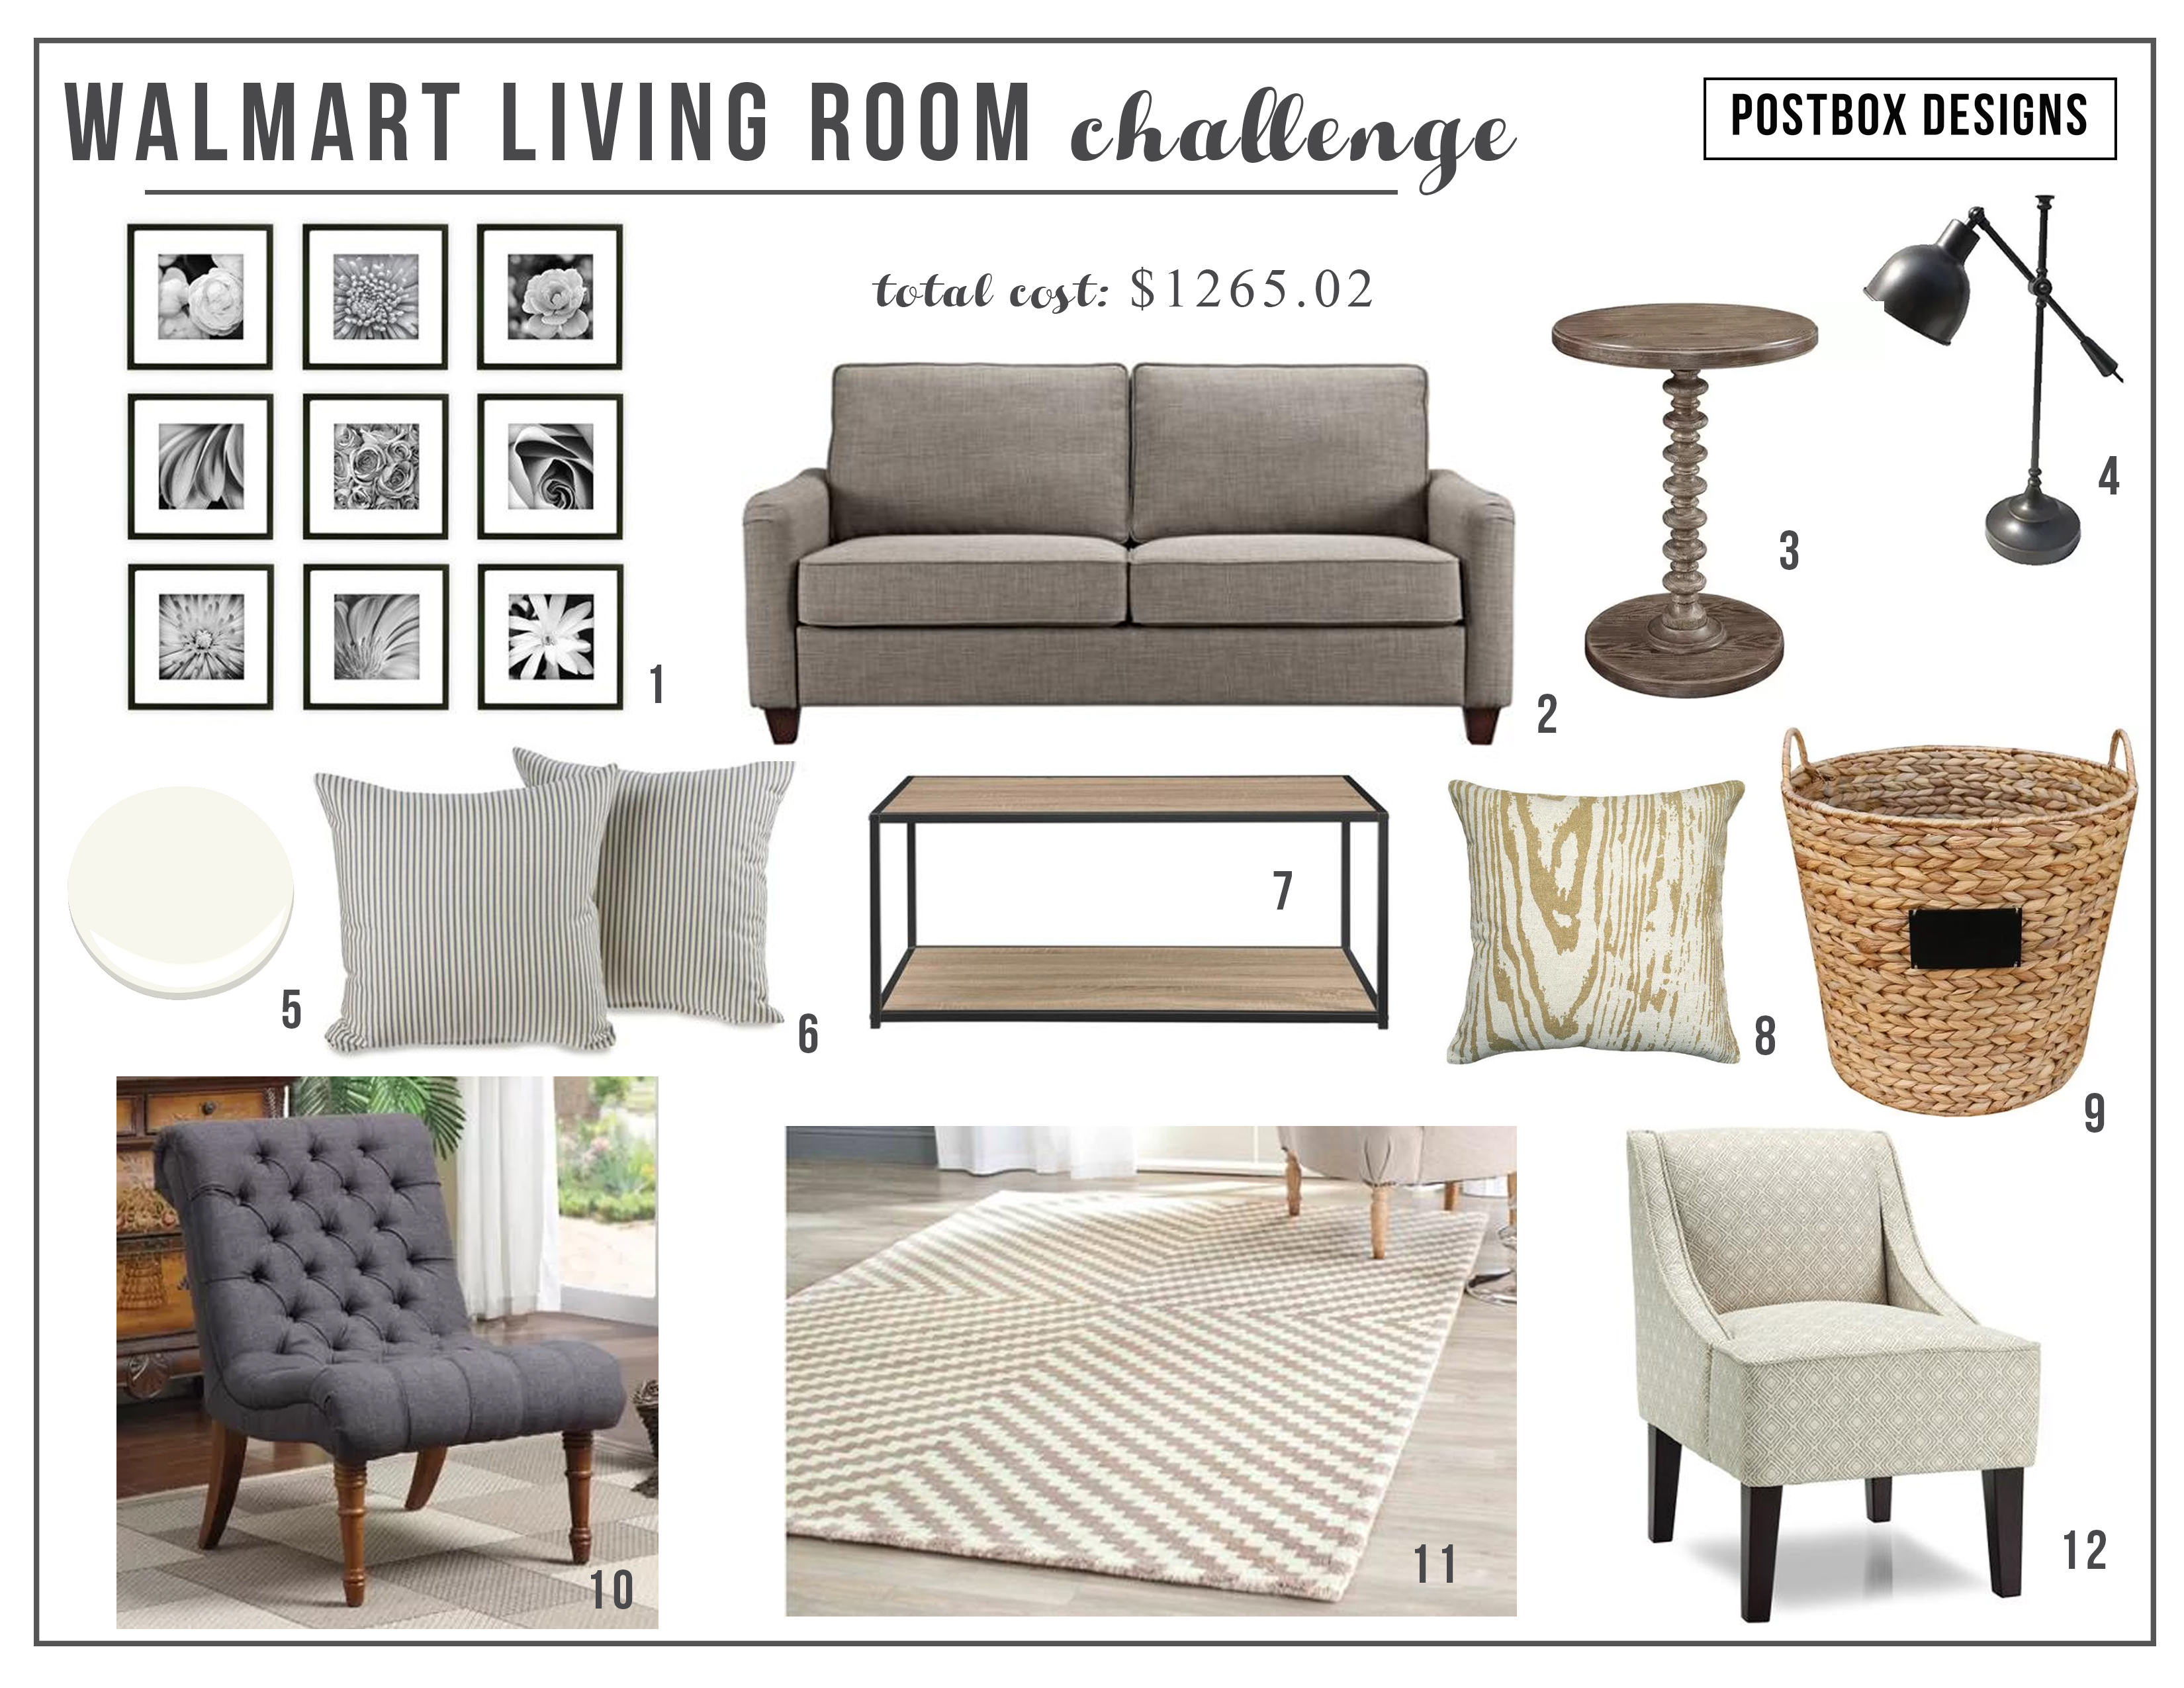 Awesome Walmart Furniture Living Room Ideas House Design